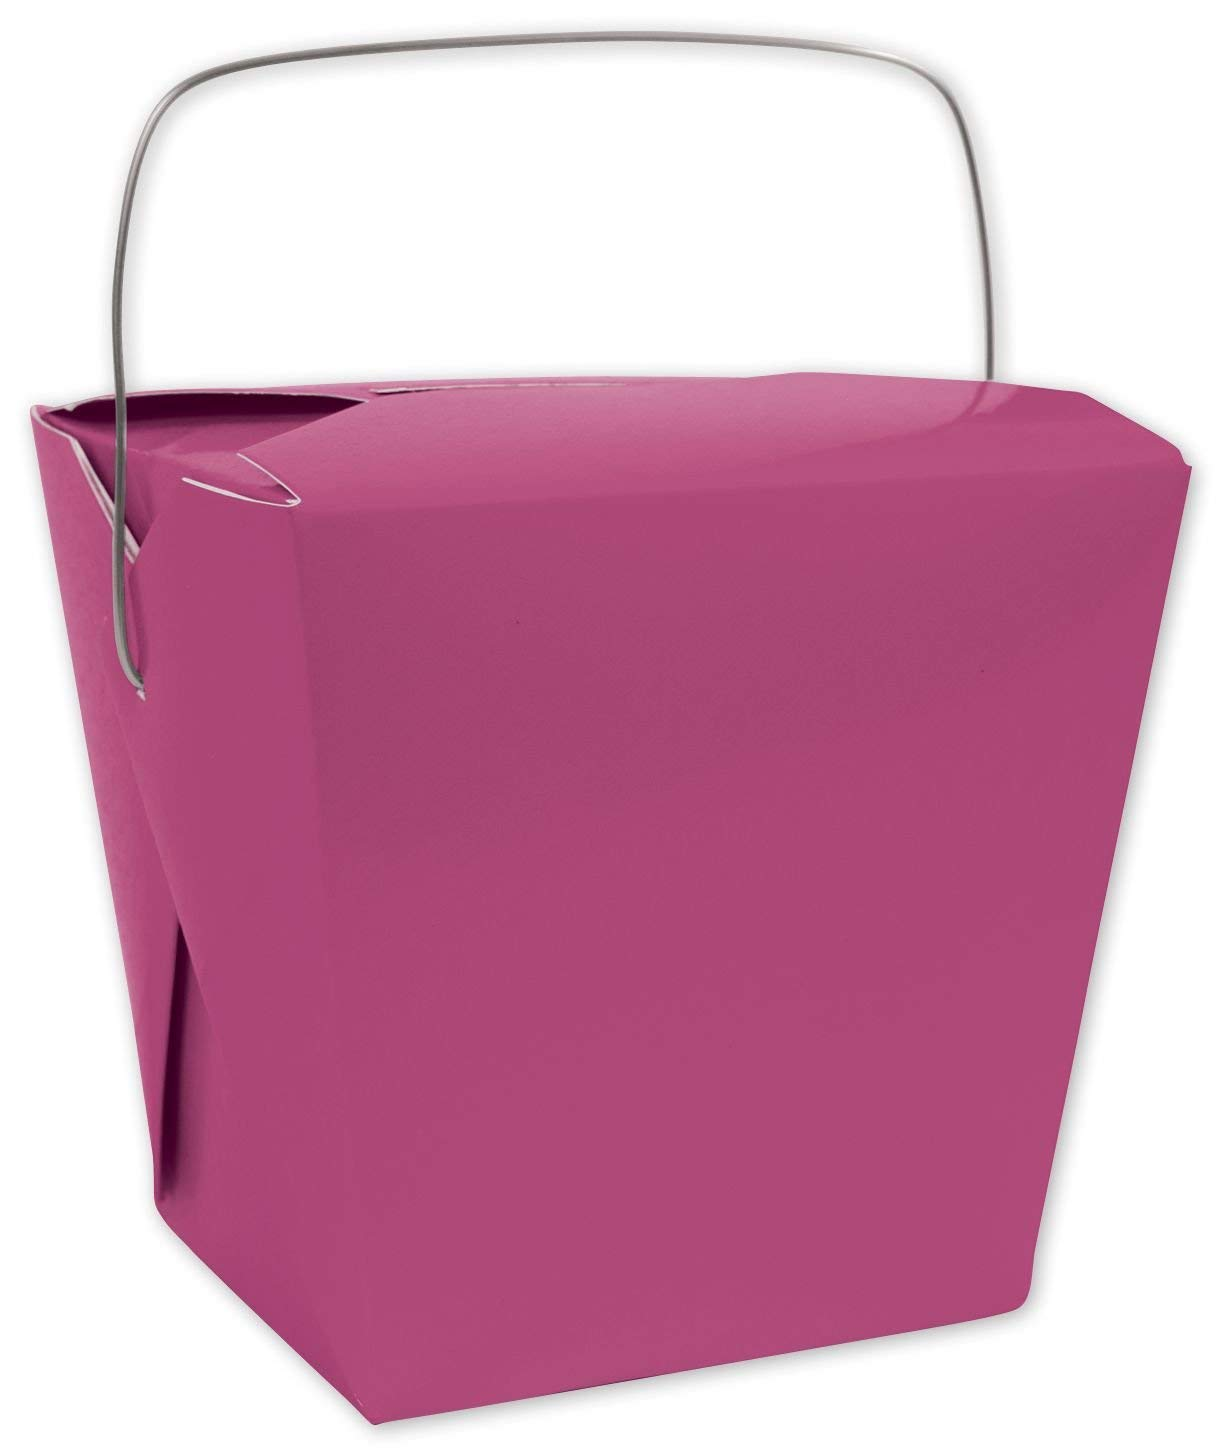 """Solid Color Specialty & Event Boxes - Pink Event Boxes, 4 x 3 1/2 x 4"""" (12 Boxes) - BOWS-1165-5"""